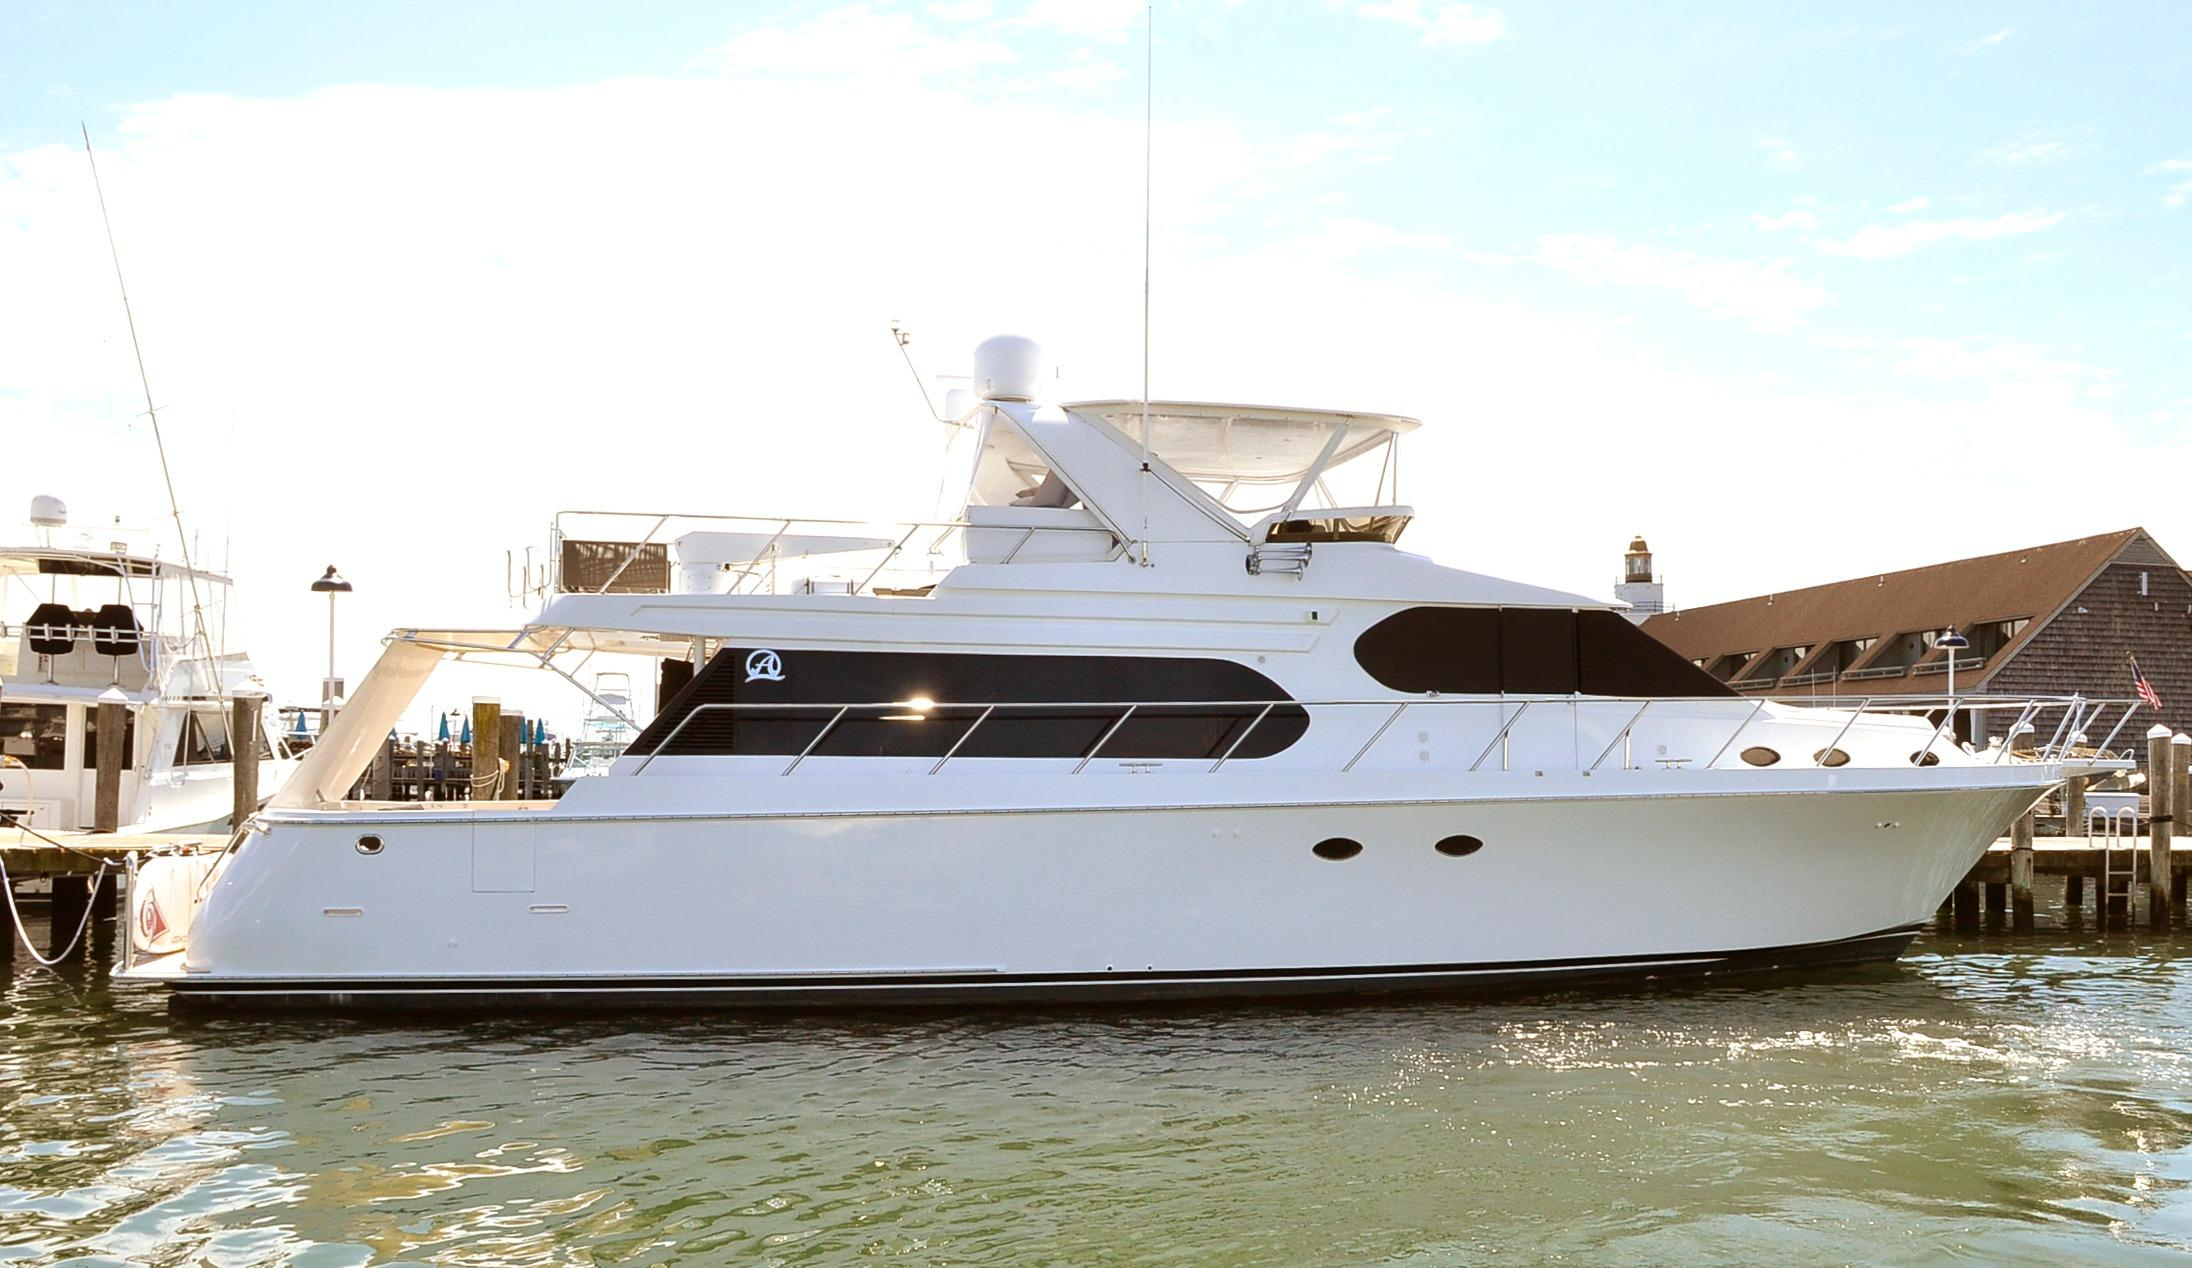 64 ocean alexander g crew 2003 unknown denison yacht sales for Large motor yachts for sale